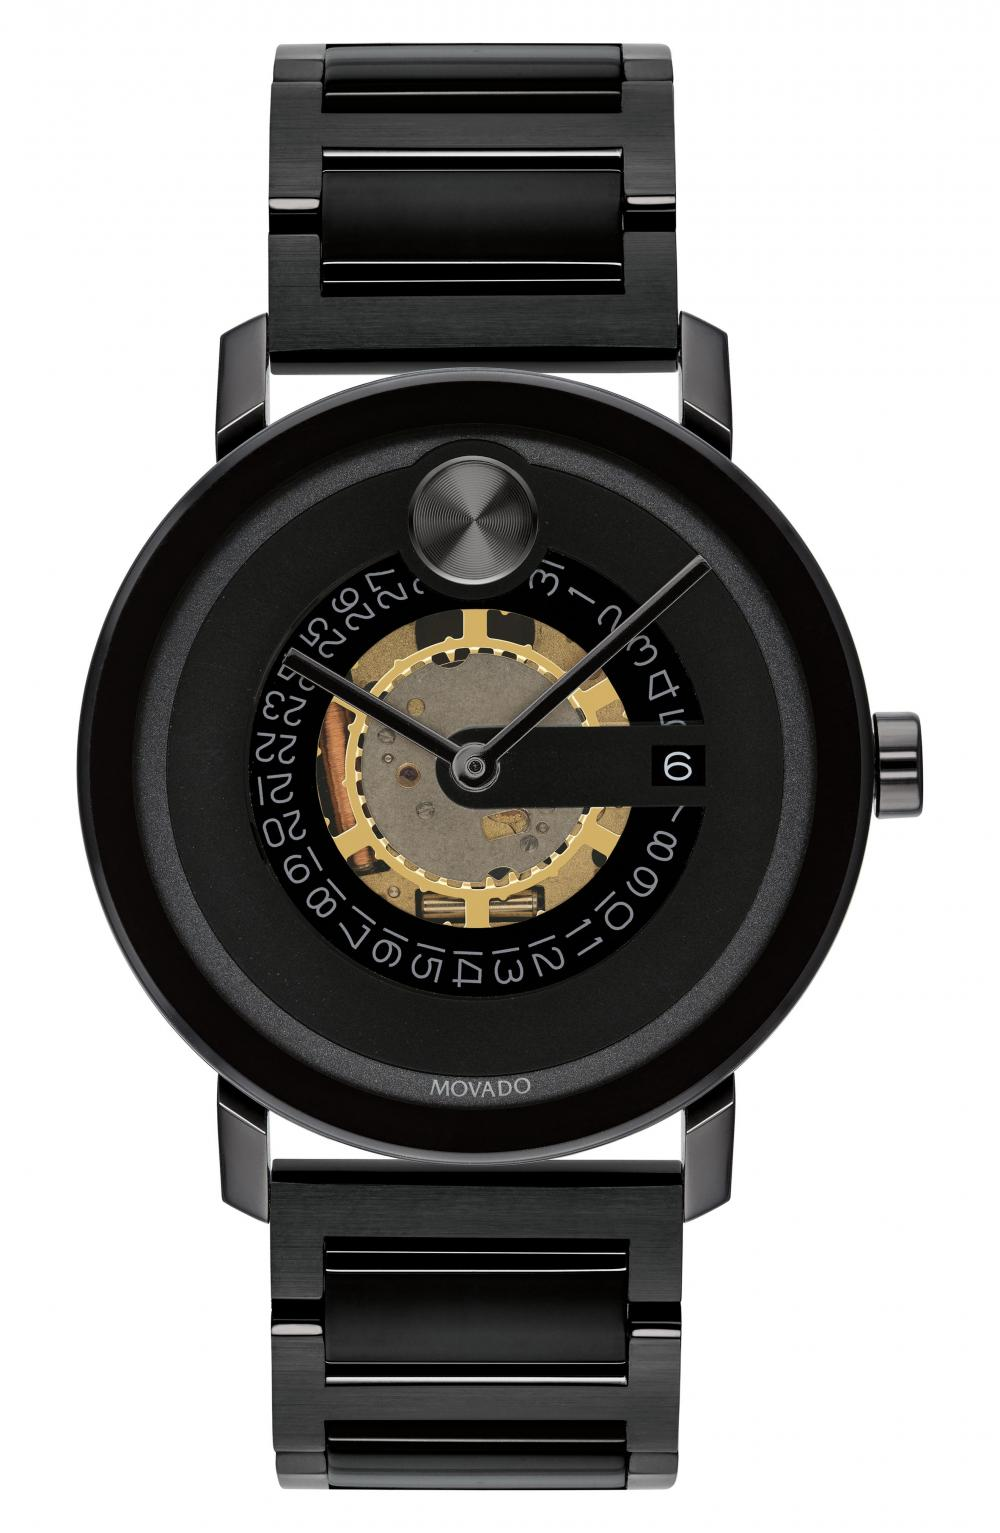 Watch. The best gift for a men